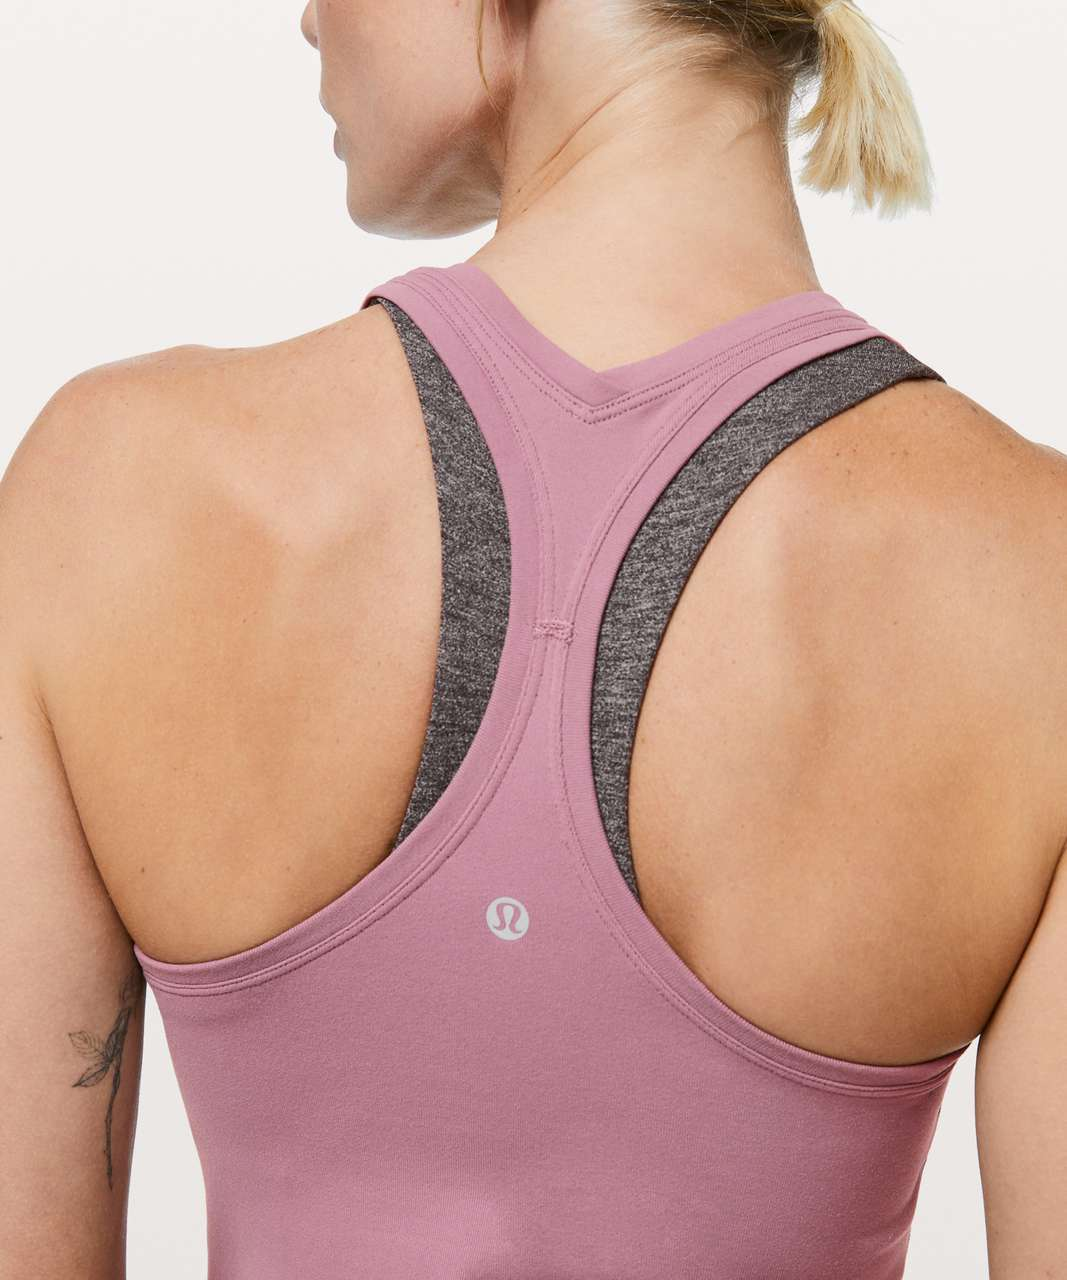 Lululemon Cool Racerback II - Figue